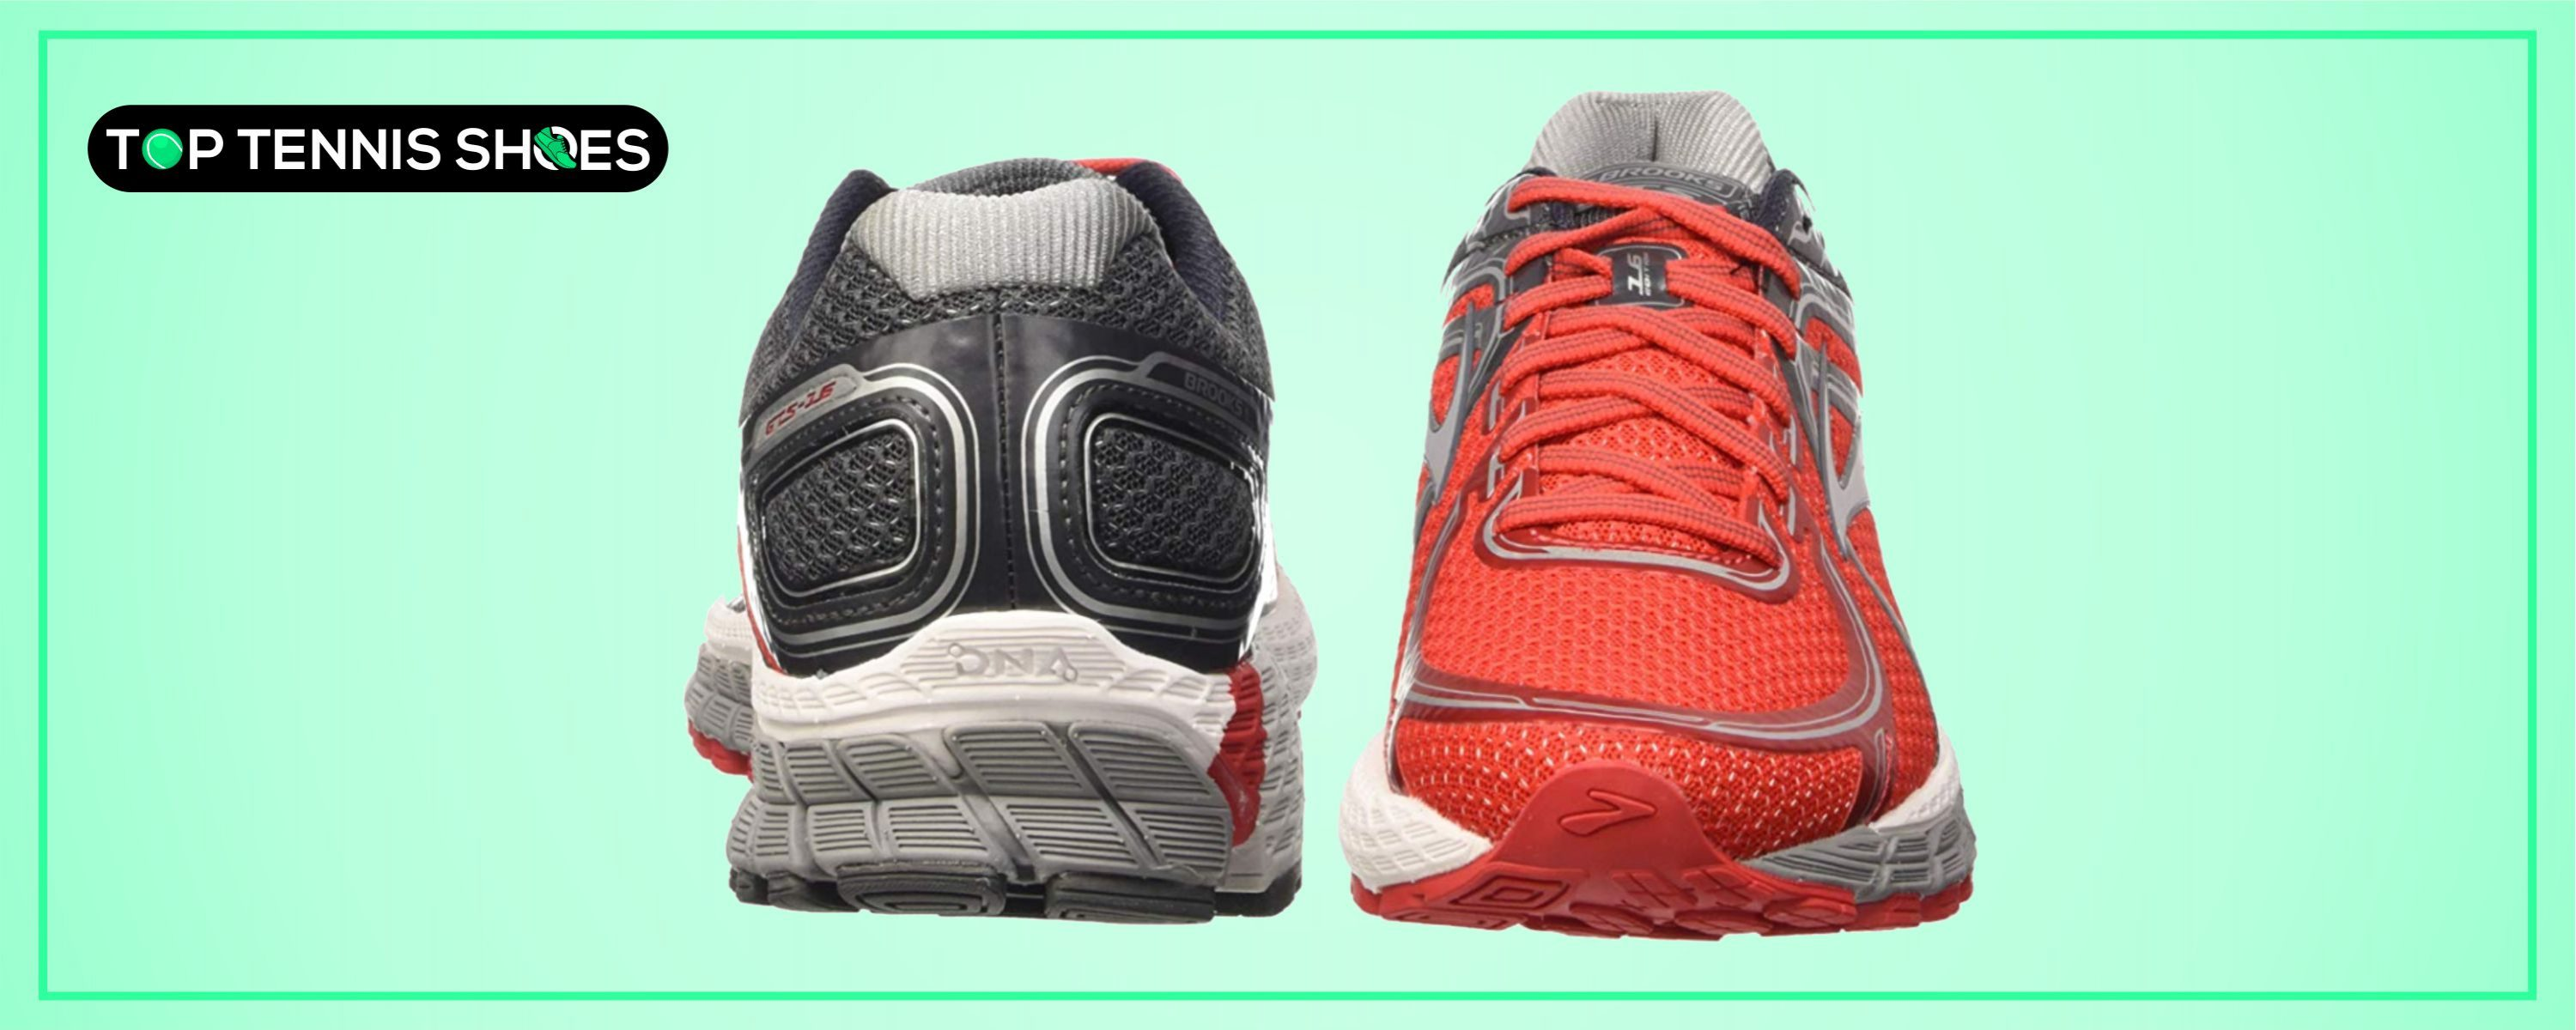 Tennis shoes for flat feet 2019 buyer's reviews